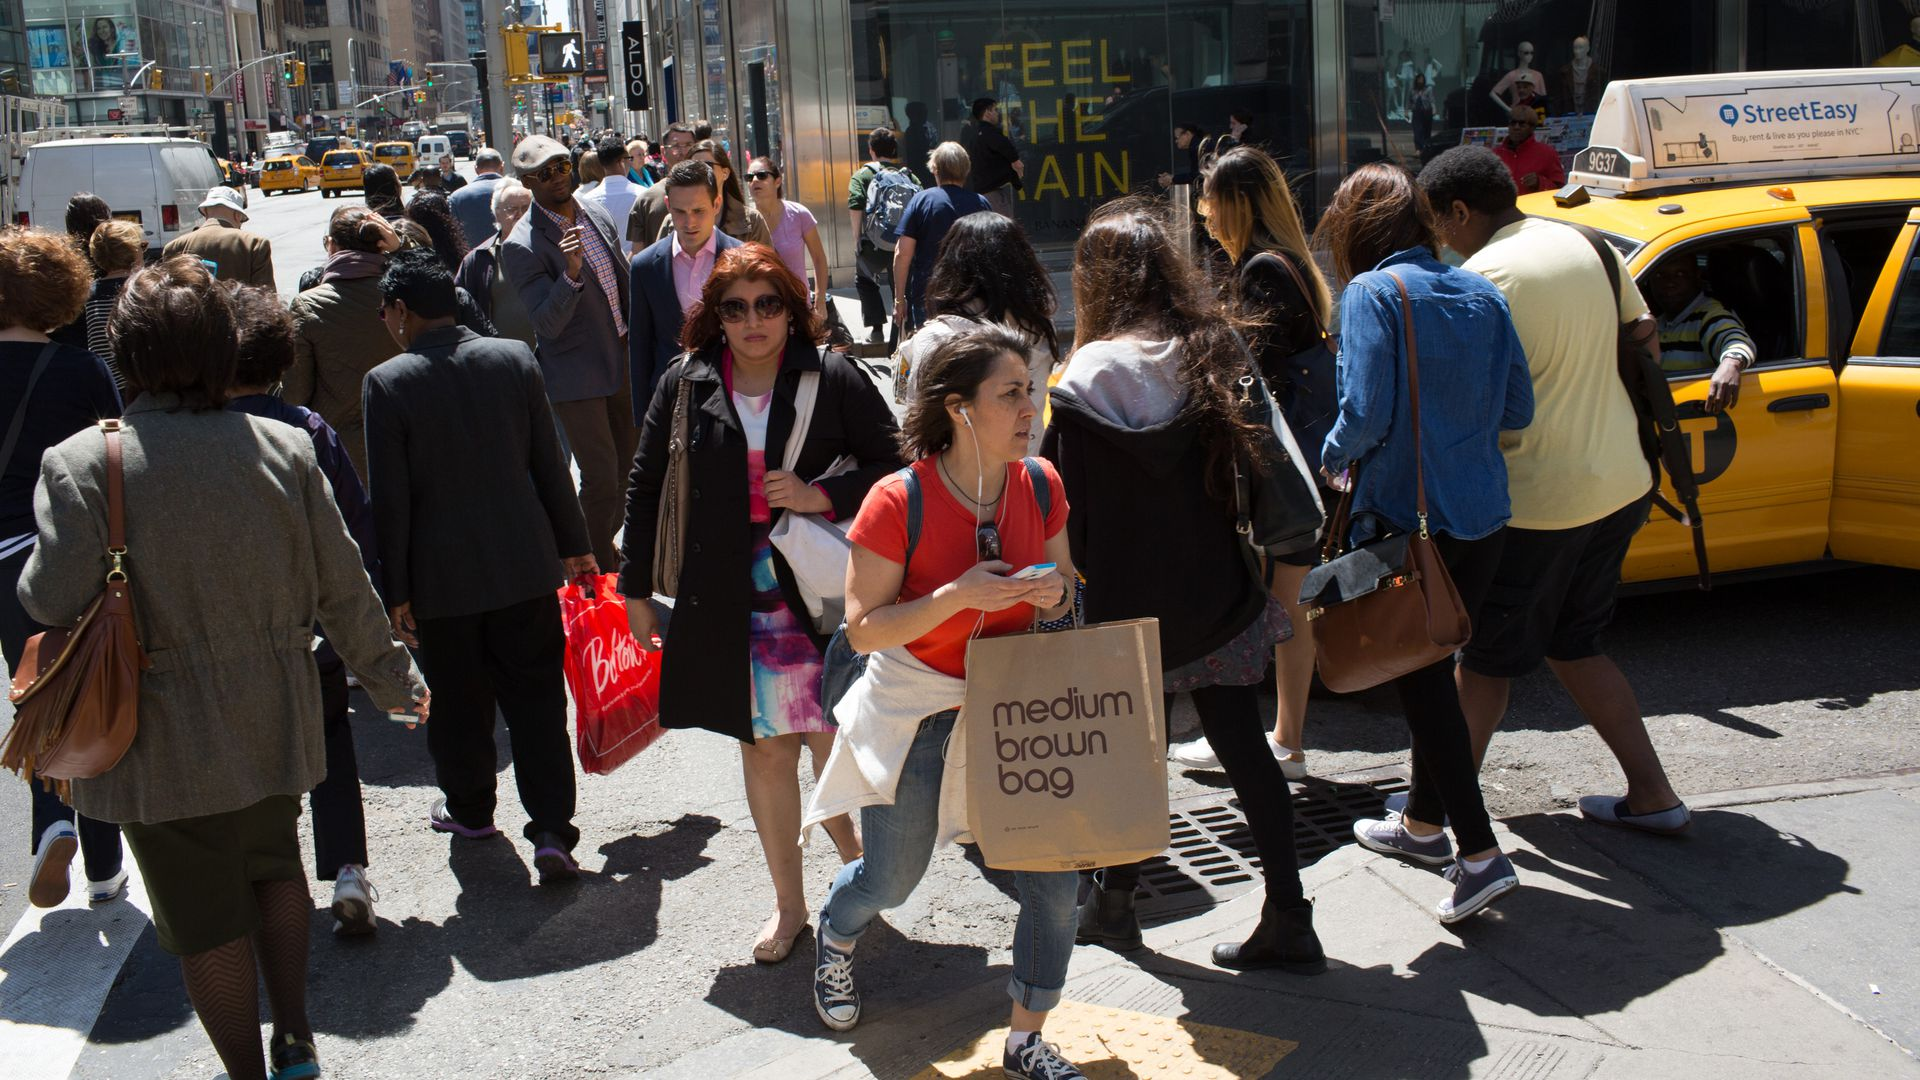 Shoppers walk through a crowded New York crosswalk